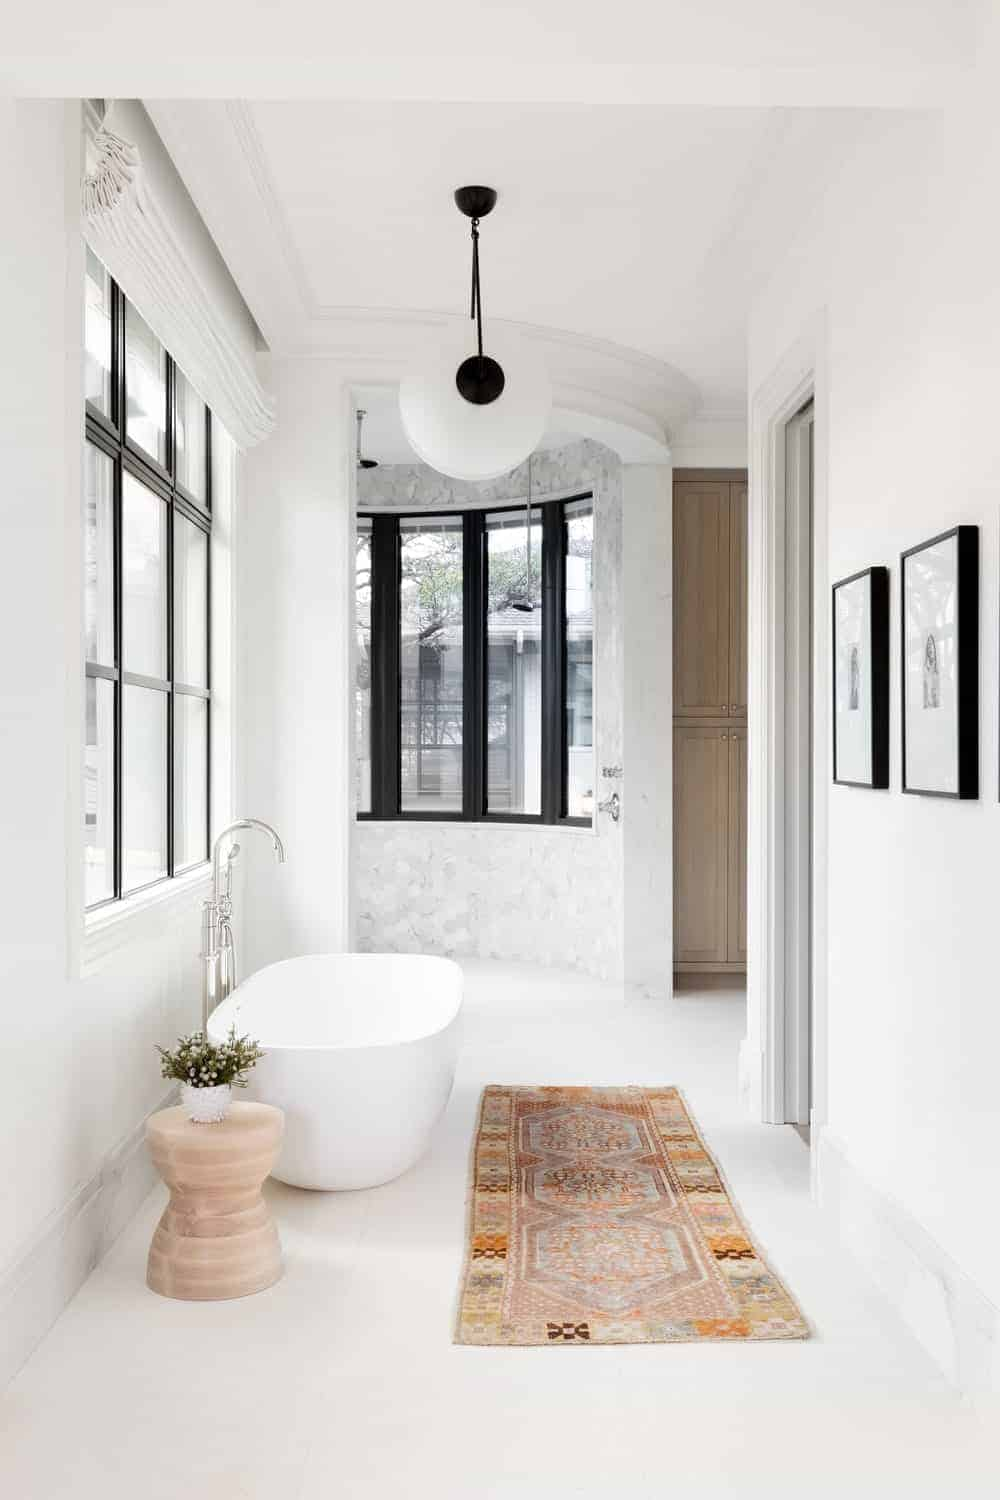 A printer runner stands out against the white floor and walls mounted with black framed artworks. It is accompanied by a round side table and a freestanding bathtub with chrome fixtures.